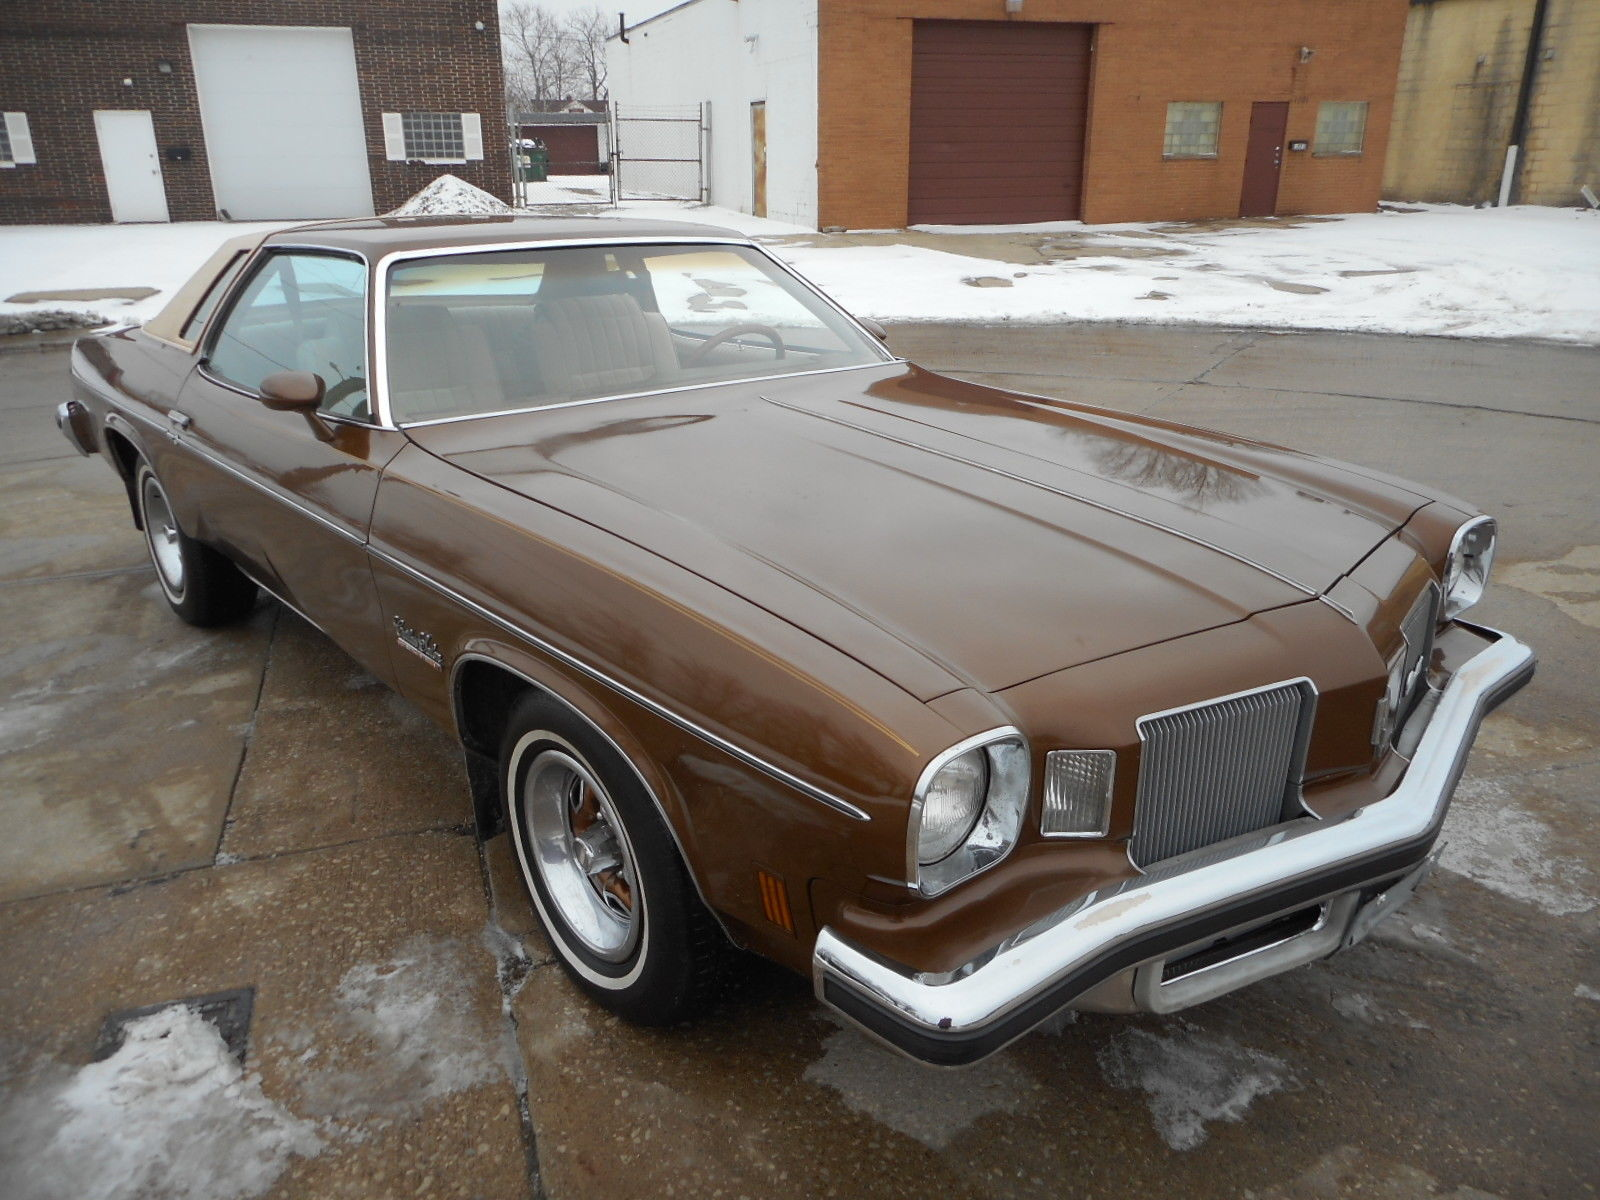 Daily turismo auction watch 1974 oldsmobile cutlass salon for 1974 cutlass salon